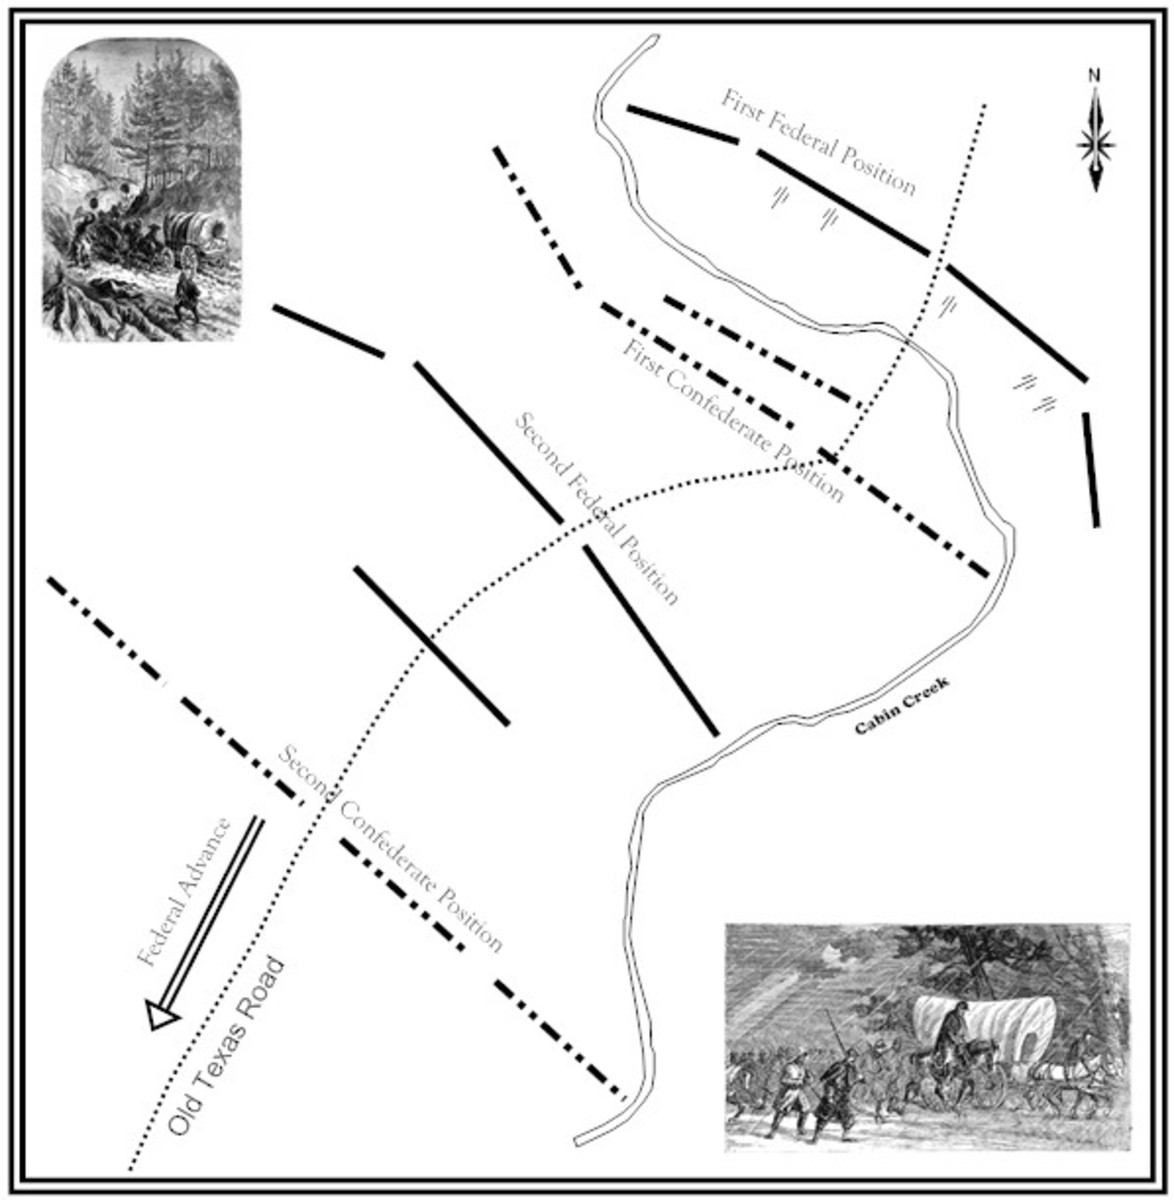 Oklahoma Civil War Sites: Map showing the Confederate and Union positions during the Battle of Cabin Creek.